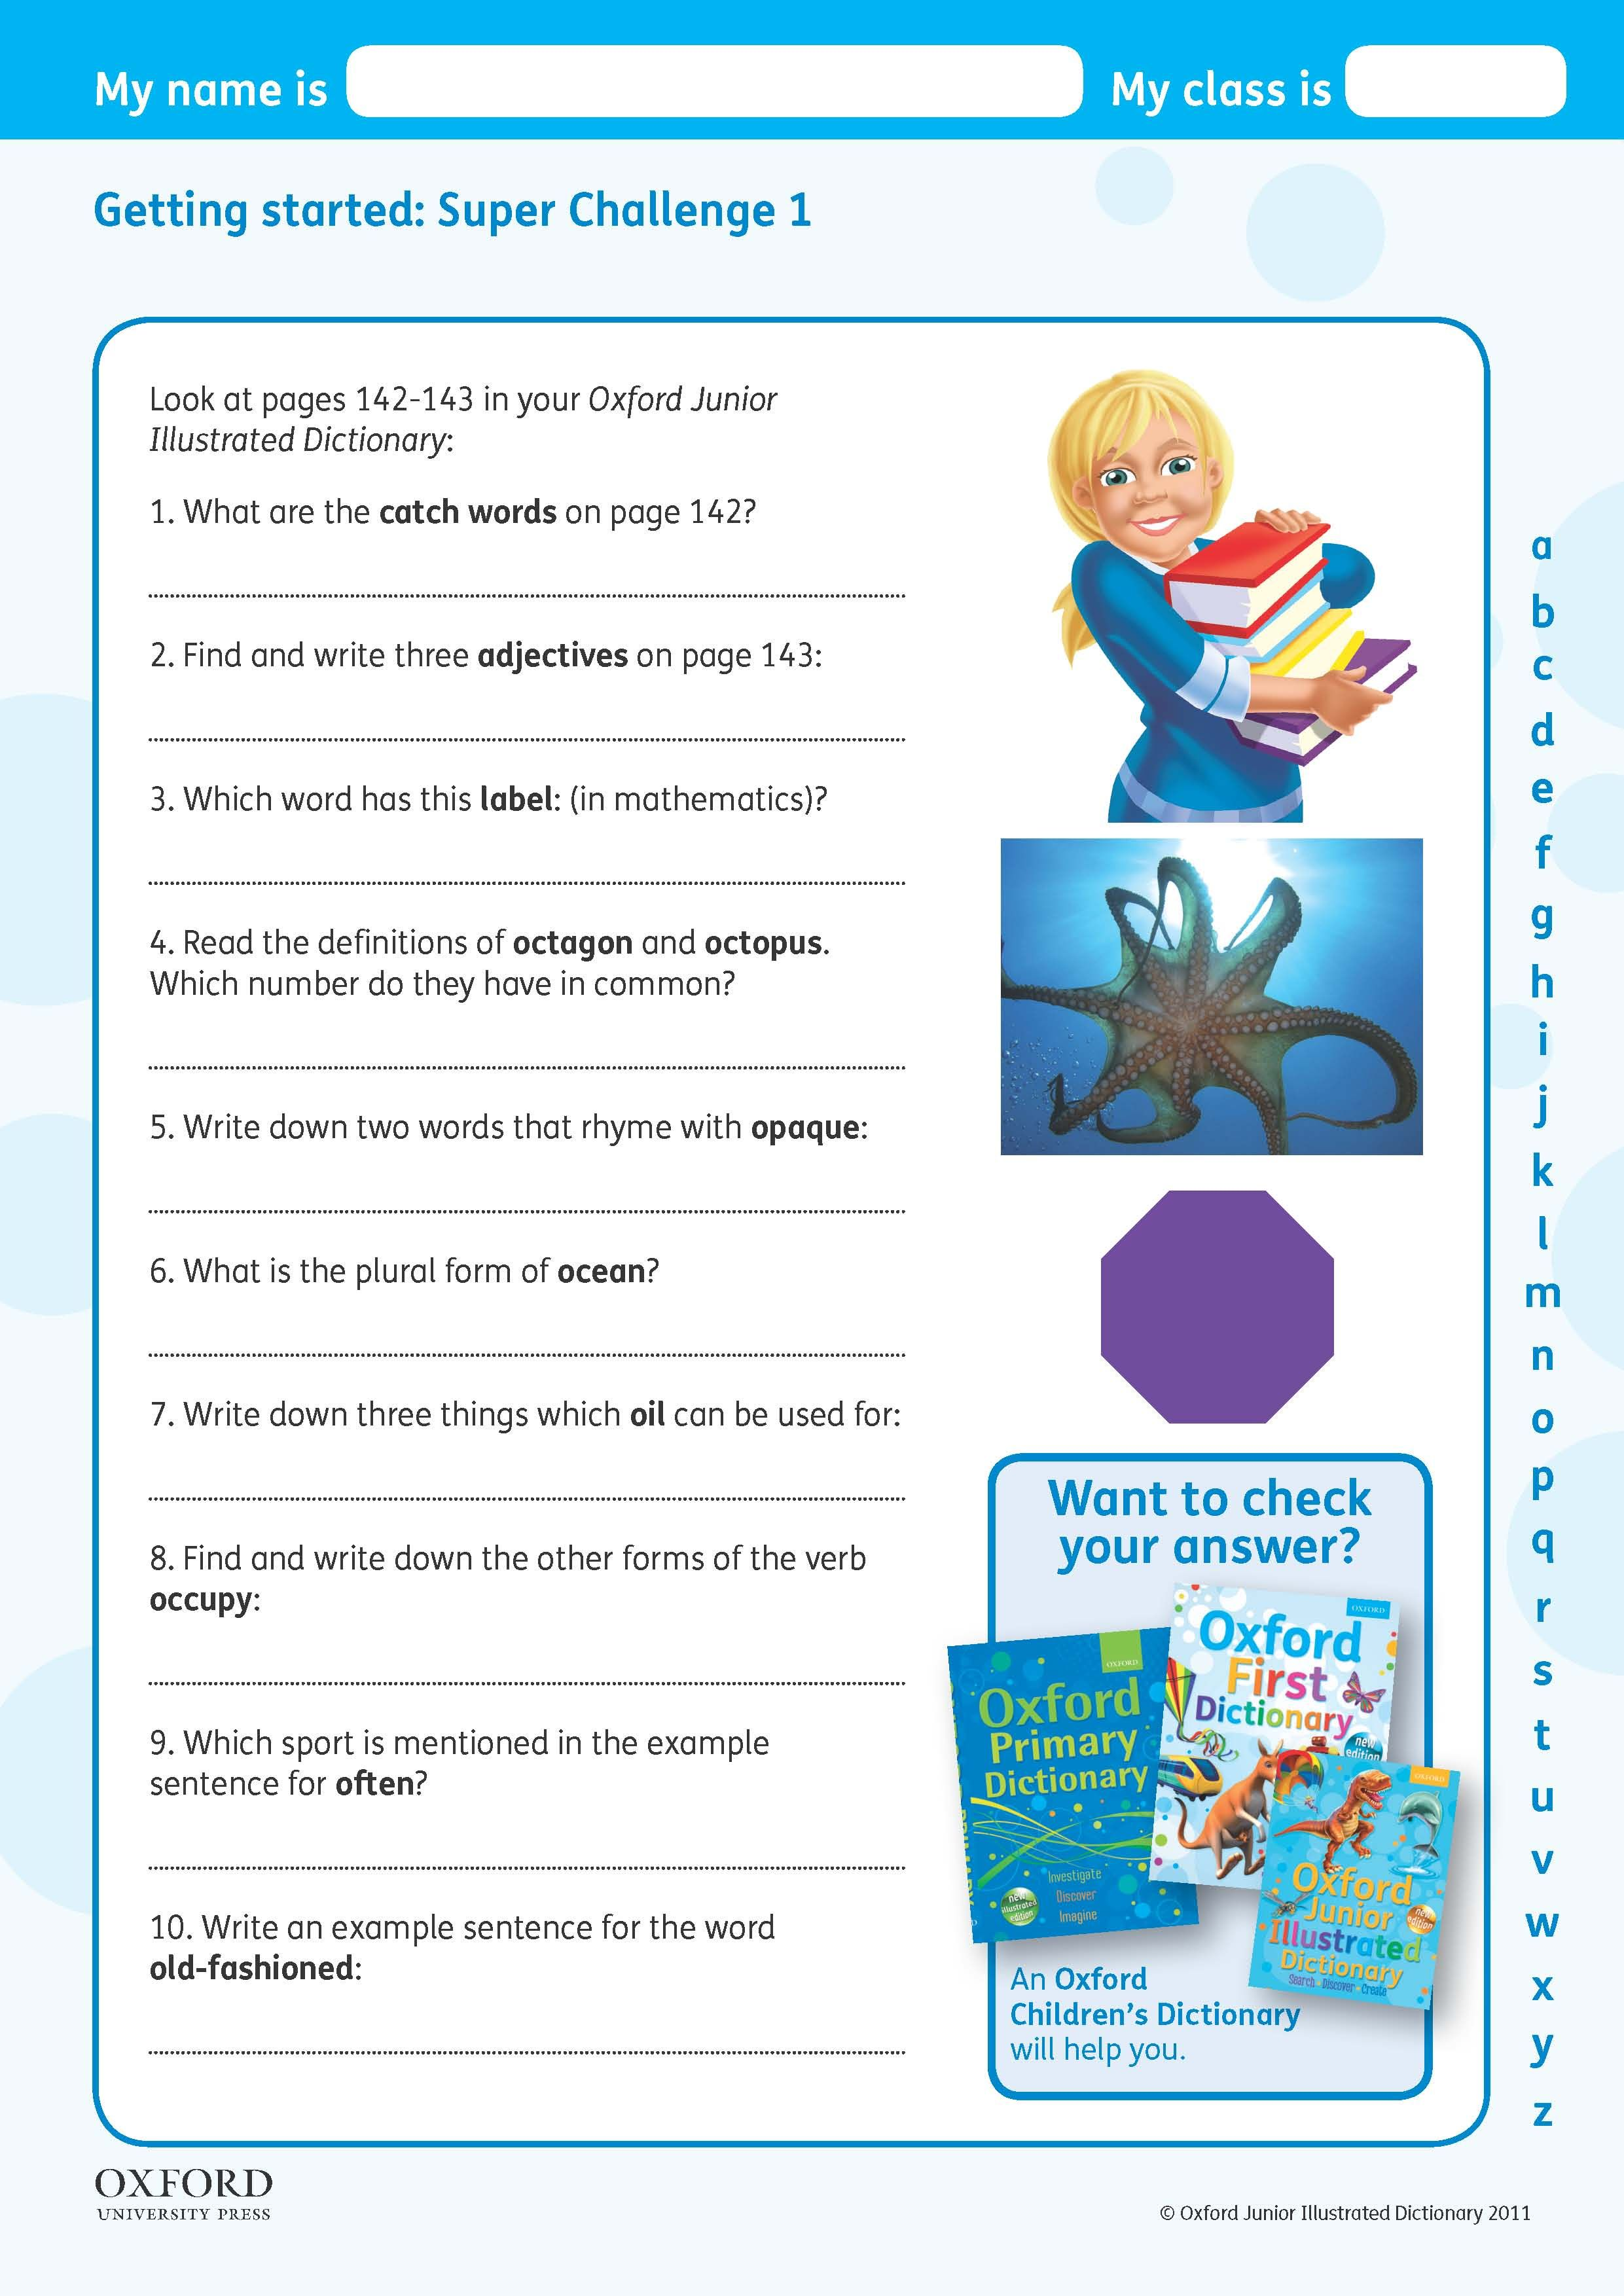 Download Your Free Oxford Junior Illustrated Dictionary Challenge Worksheet